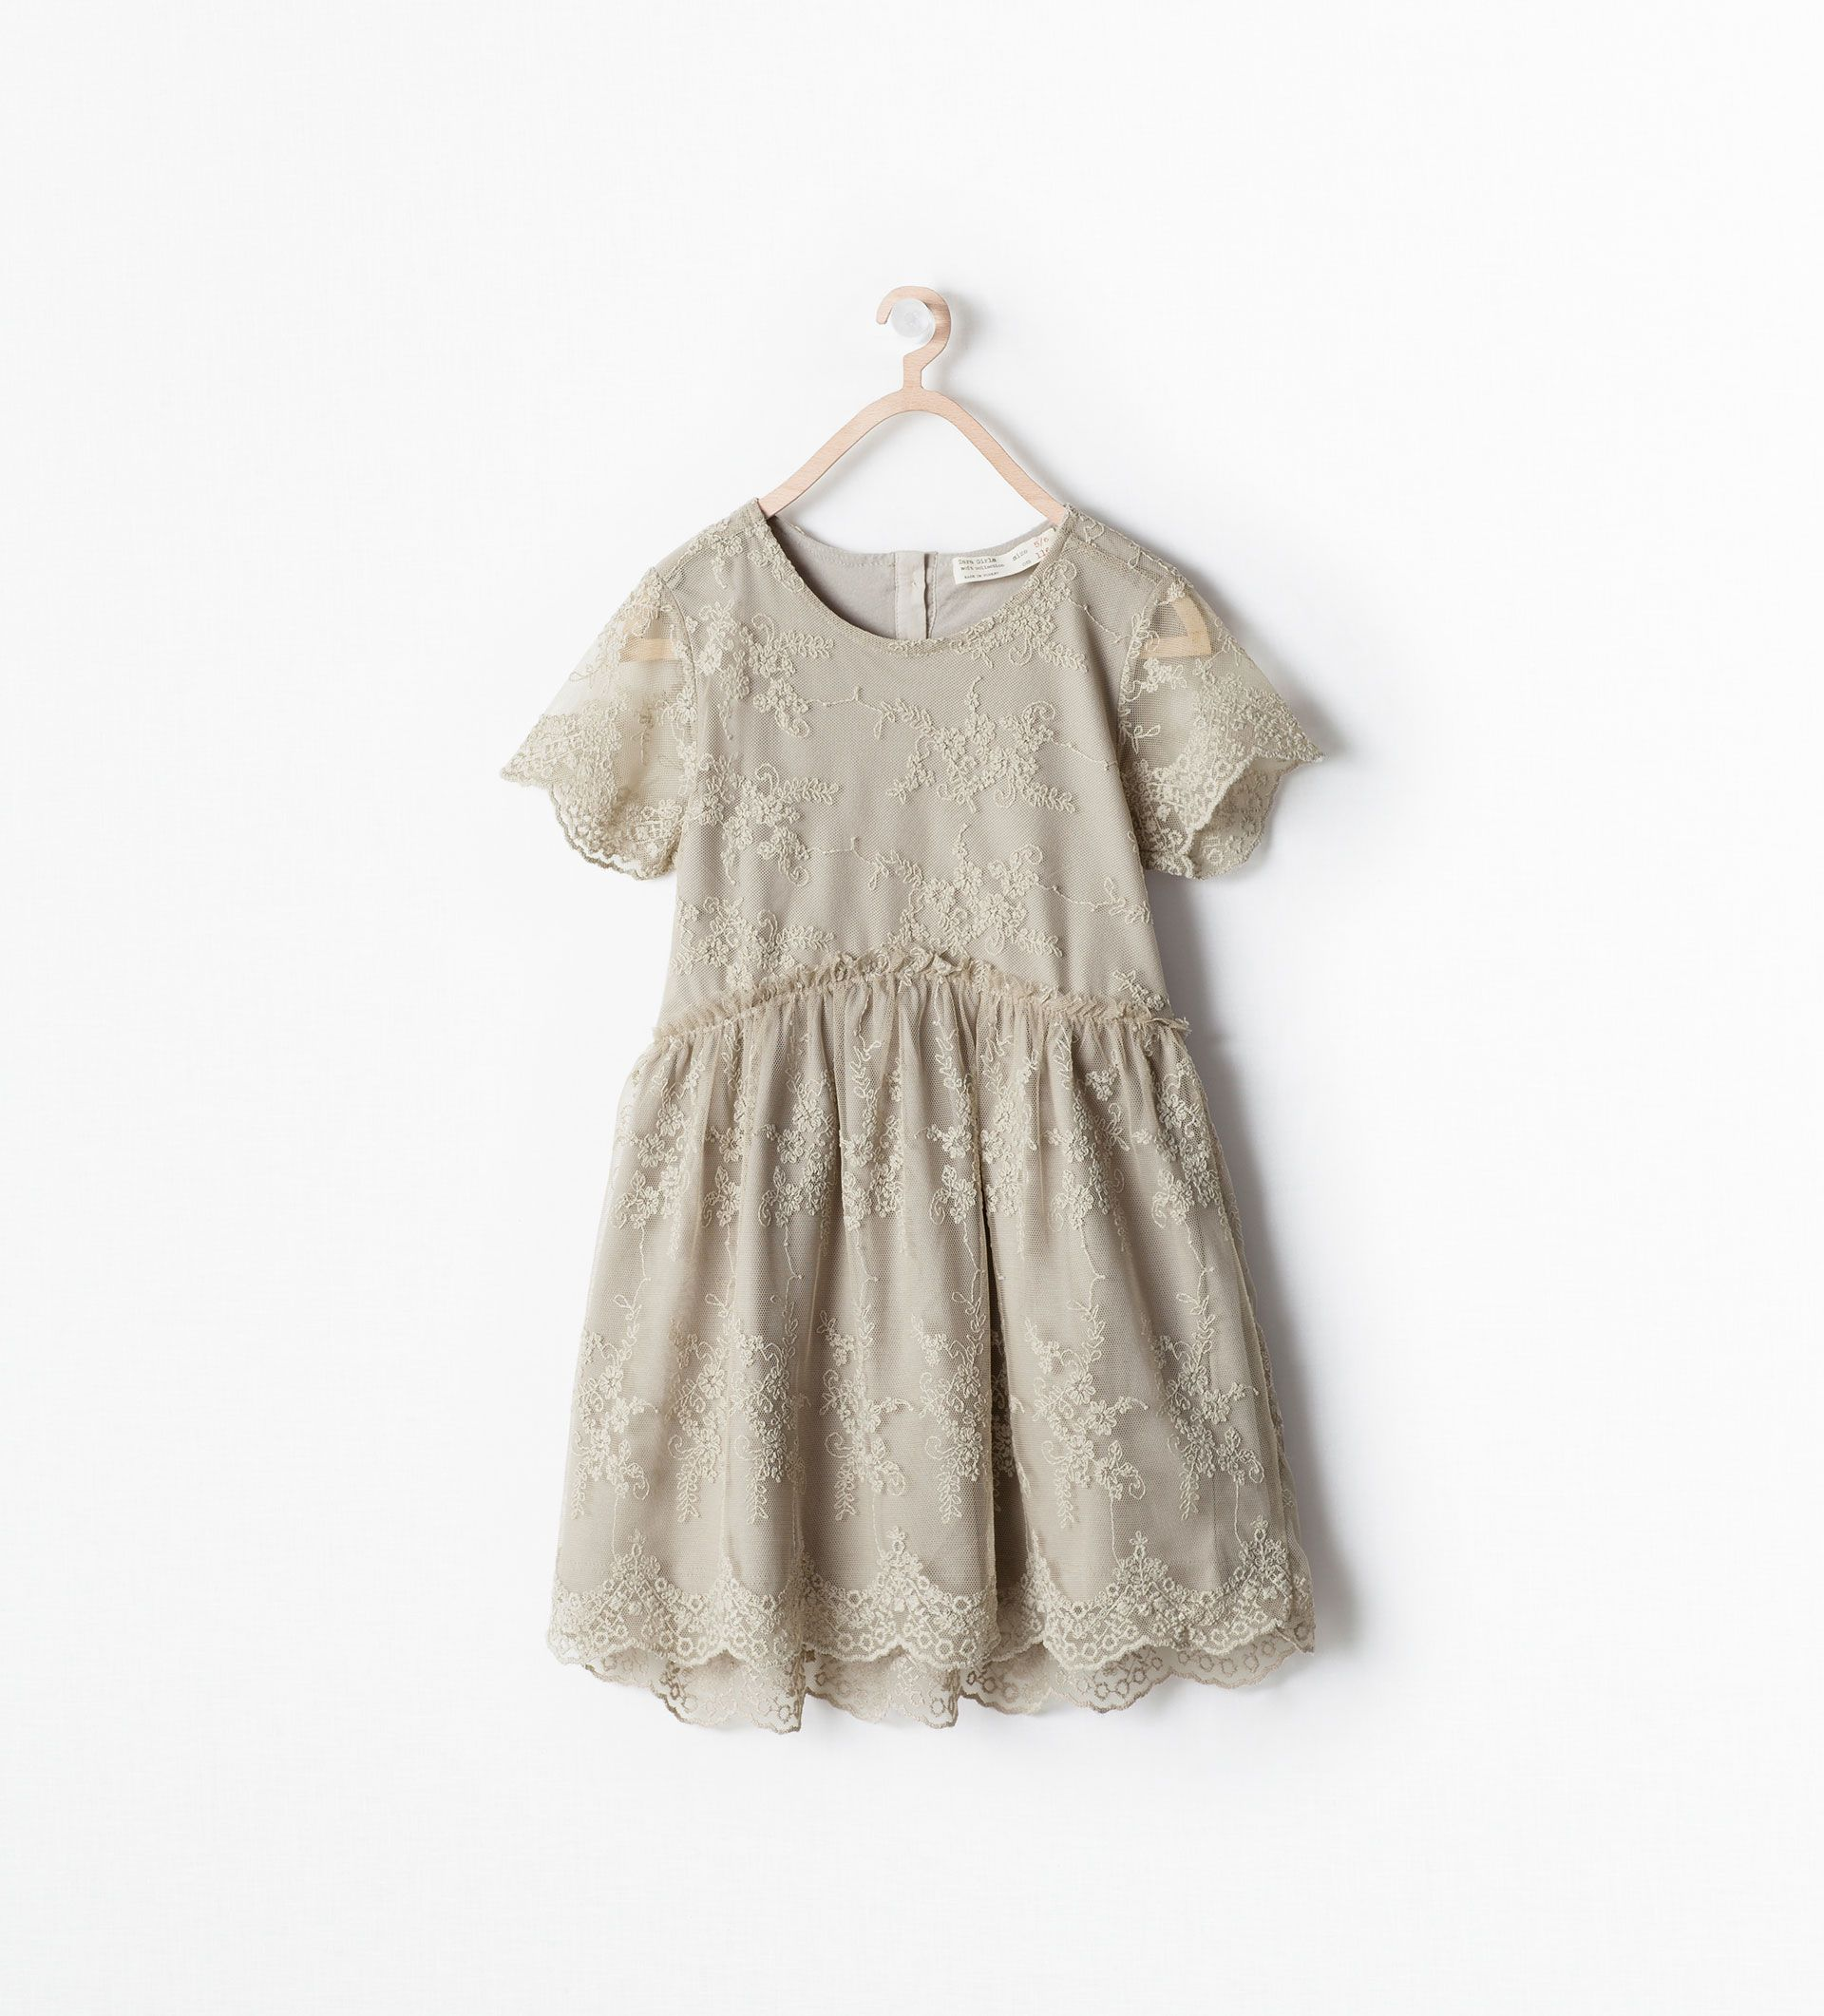 9fd55cac6a2 Little Girls EMBROIDERED TULLE DRESS from Zara | lookbook: what to ...